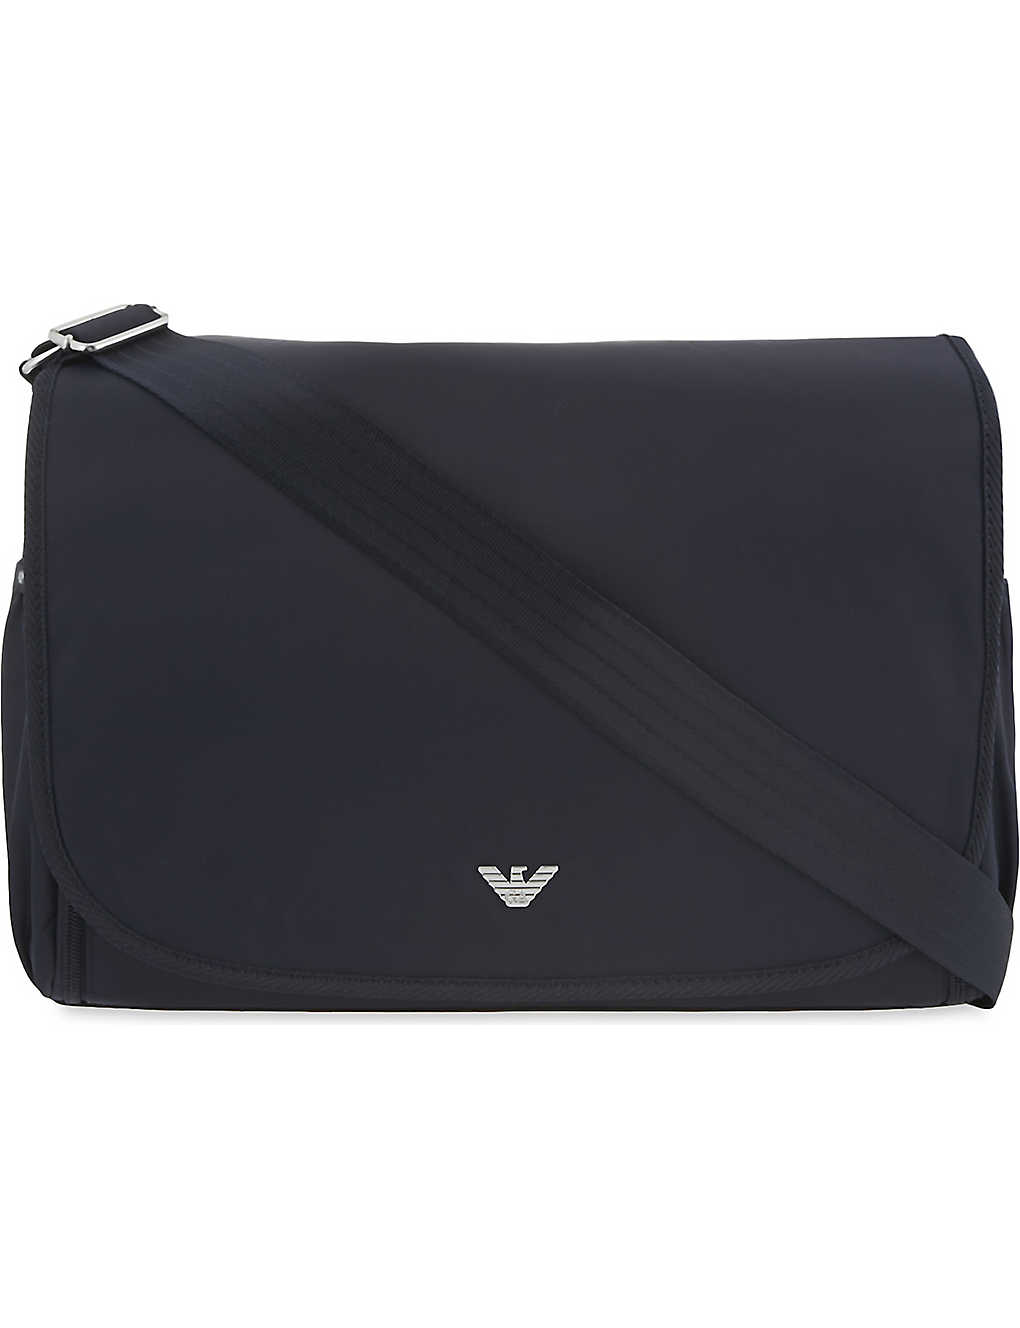 b93efb08ec41 EMPORIO ARMANI - Changing bag